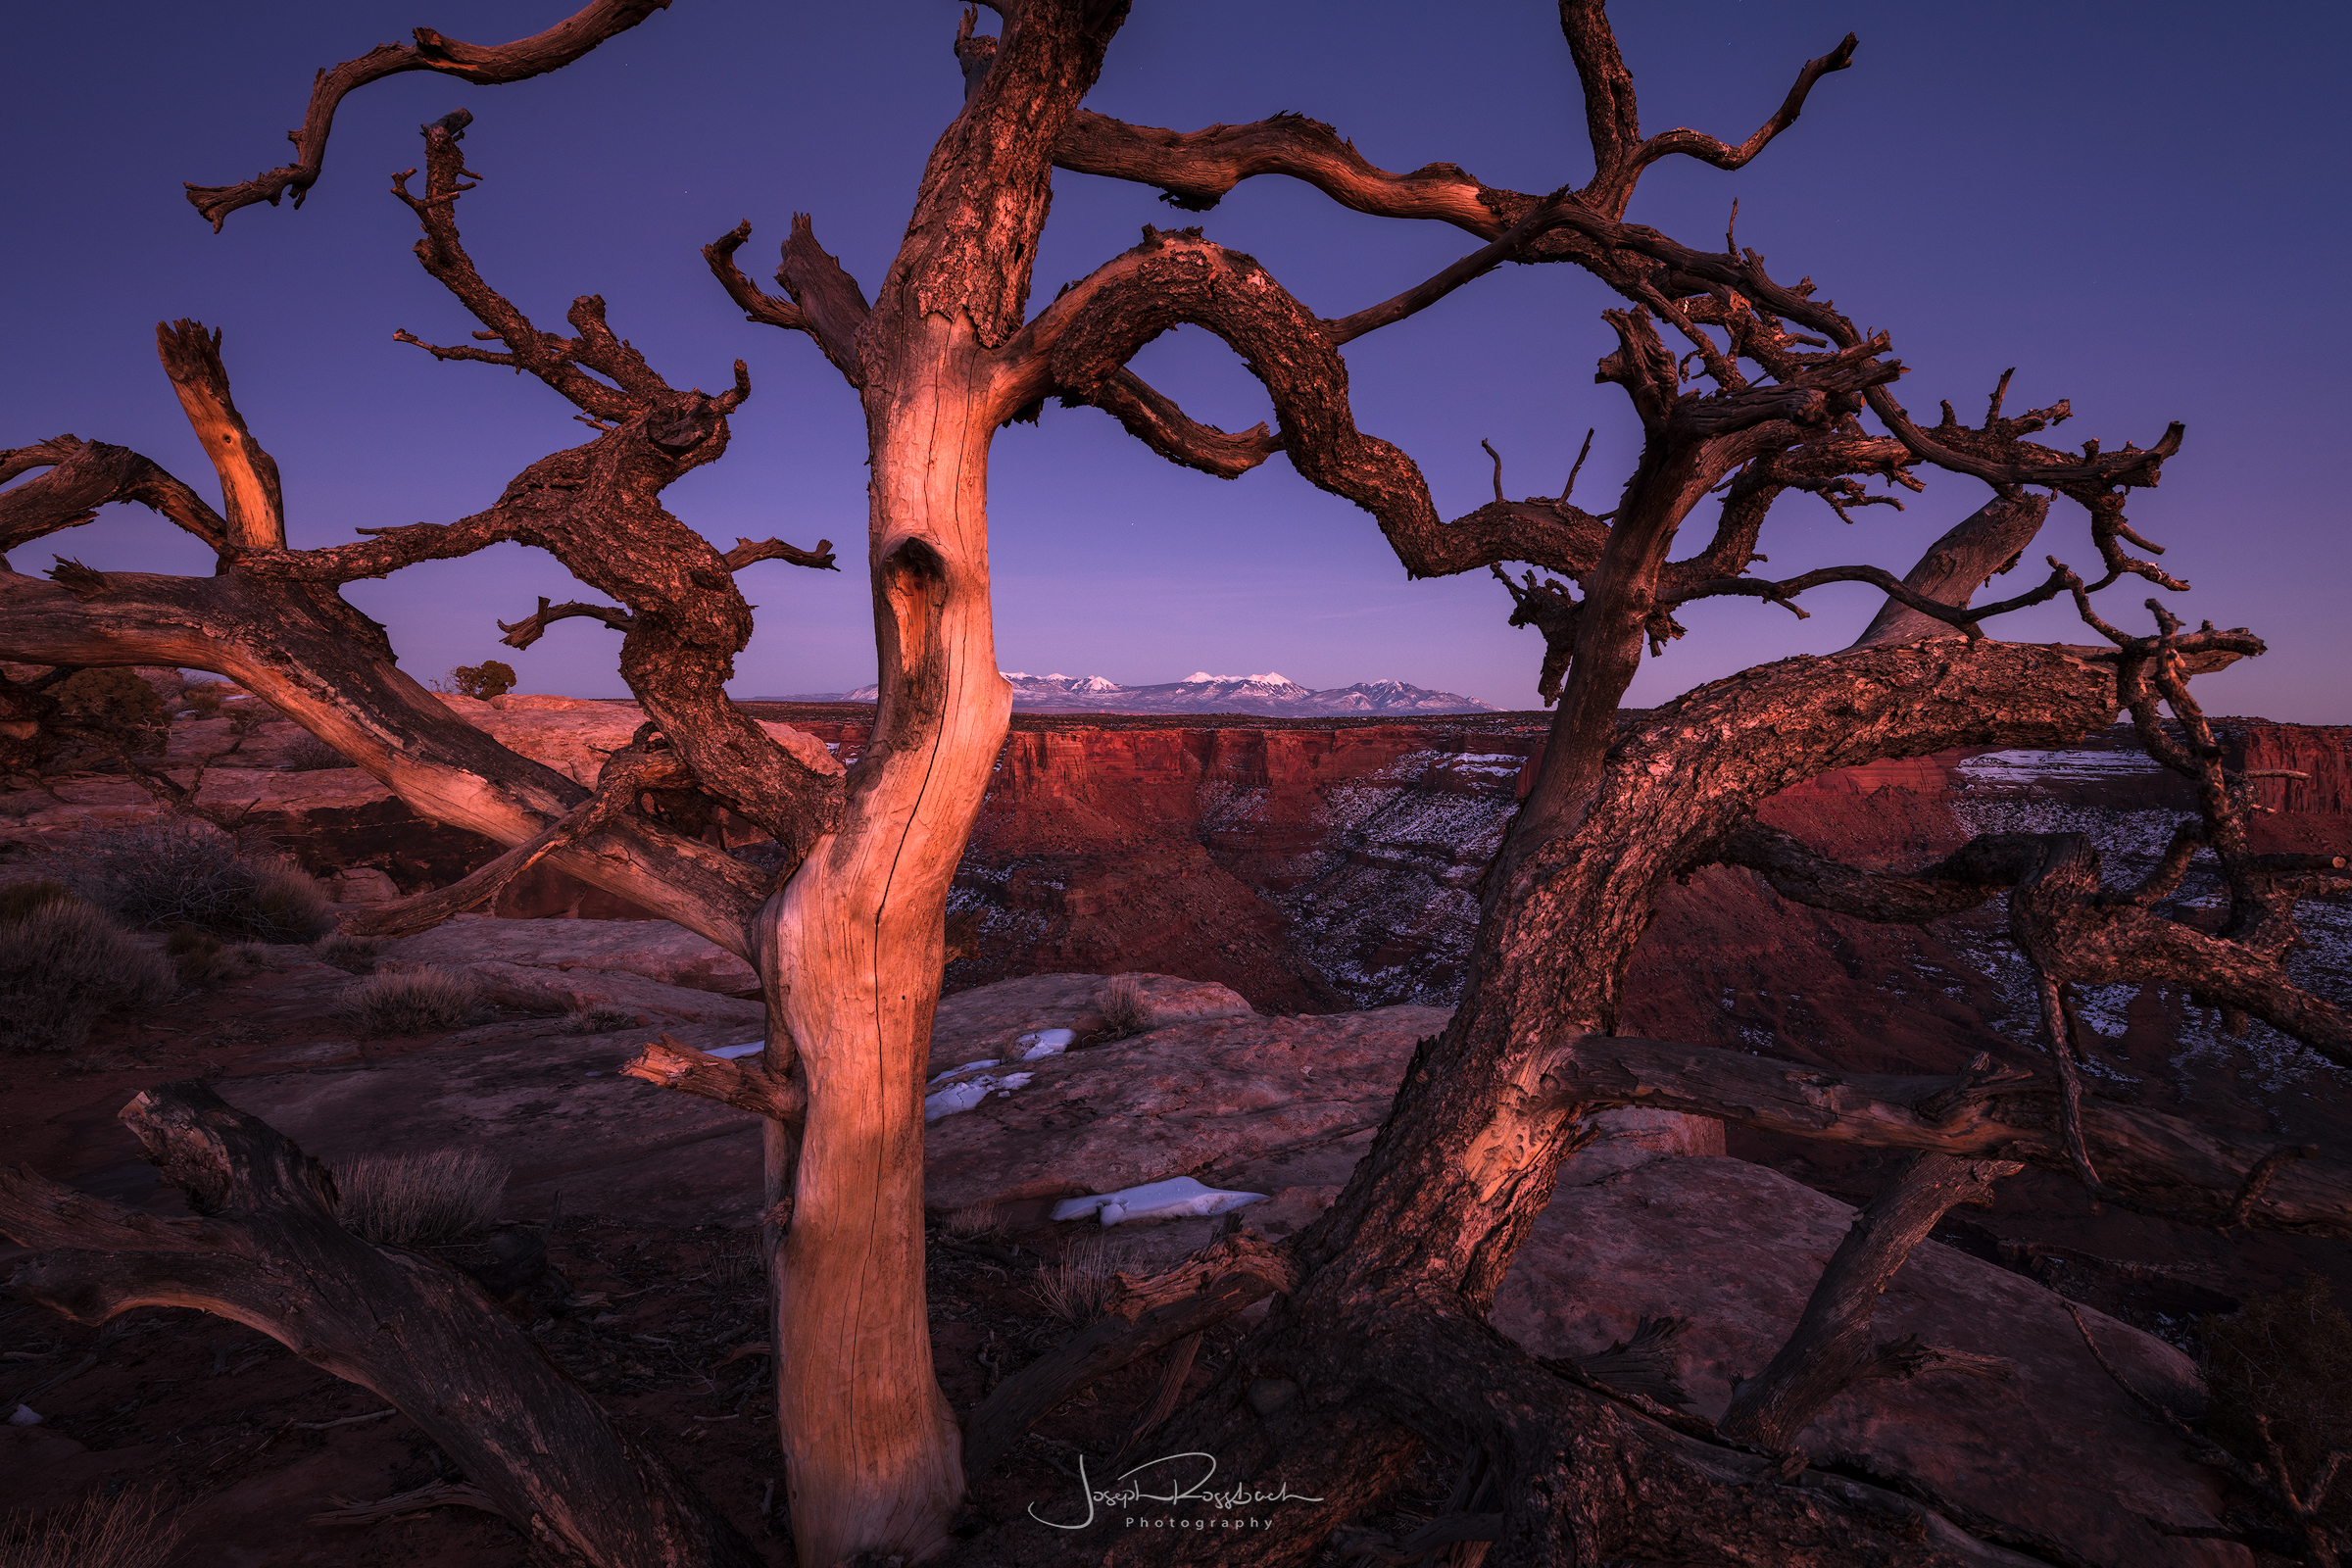 Watcher on the Rim, Canyonlands, Utah